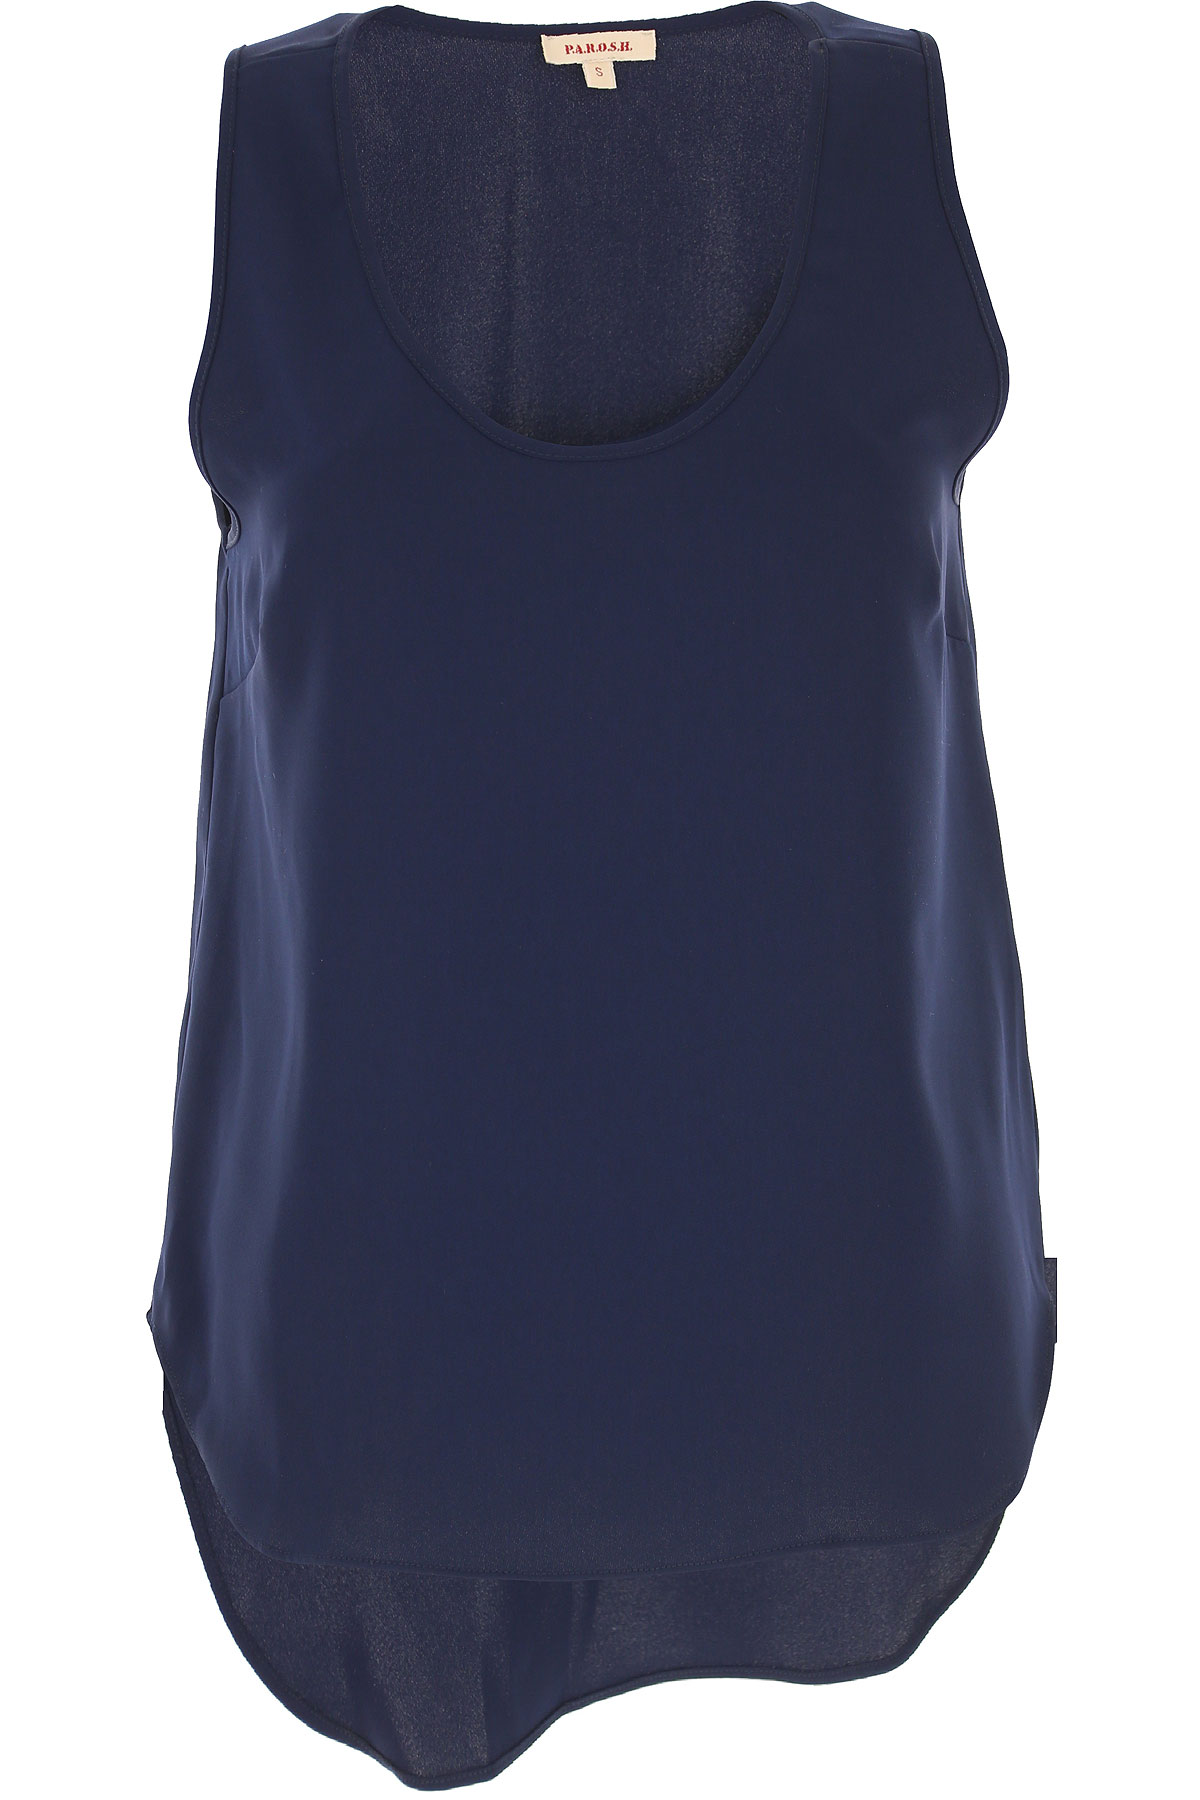 P.A.R.O.S.H. Top for Women On Sale in Outlet, Dark Blue, polyester, 2019, 4 6